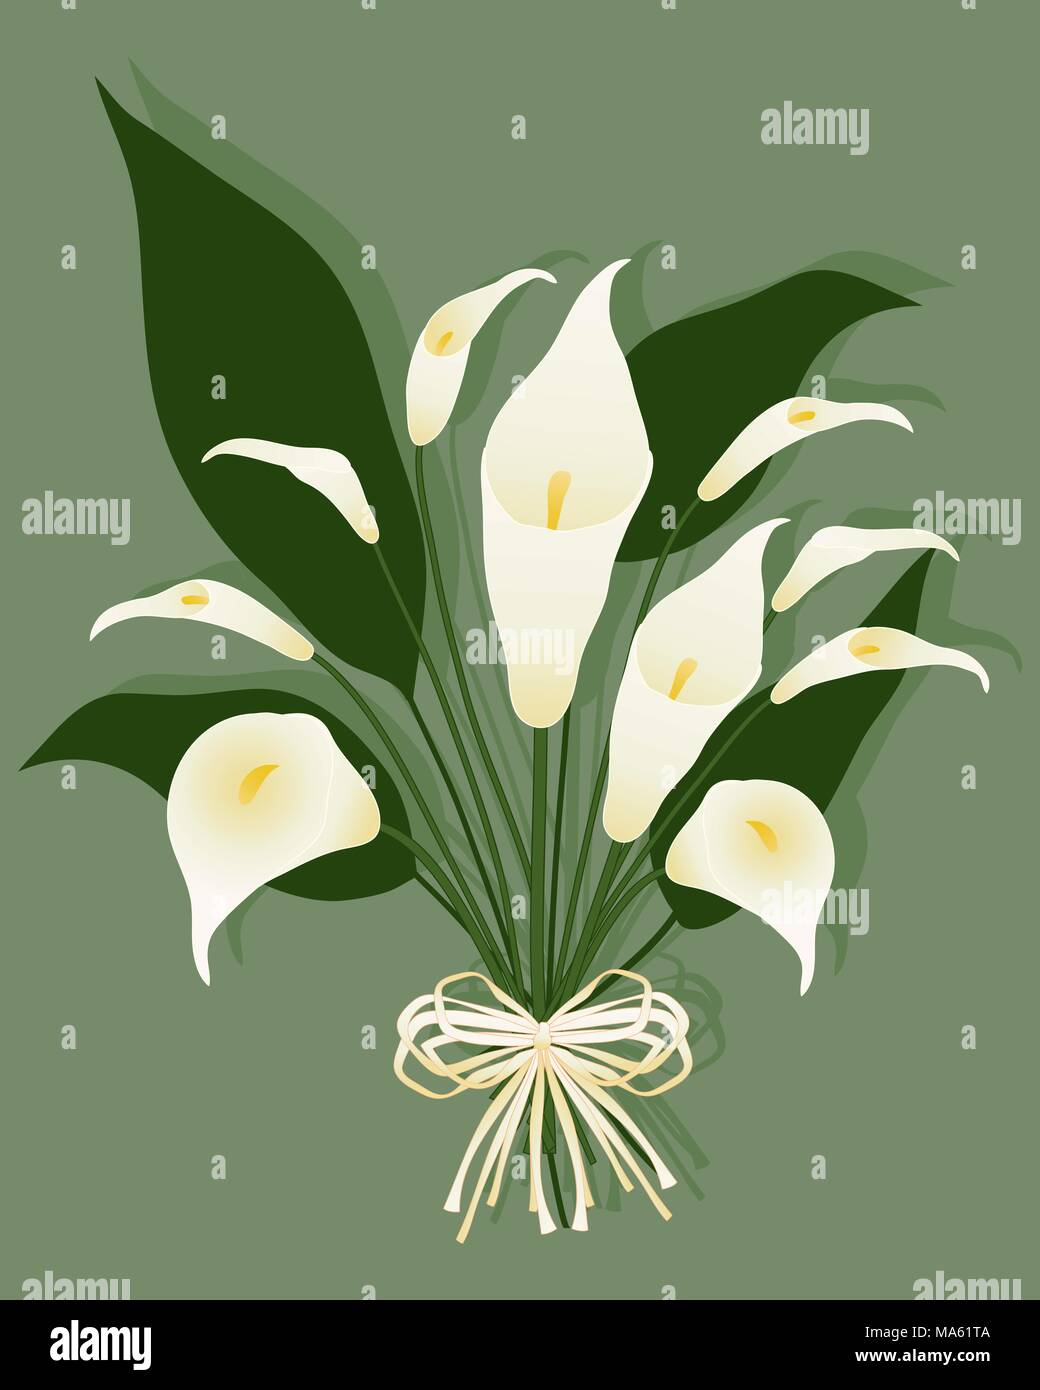 Calla lily flowers on rustic stock photos calla lily flowers on a vector illustration in eps 10 format of a bouquet of calla lilies with a rustic izmirmasajfo